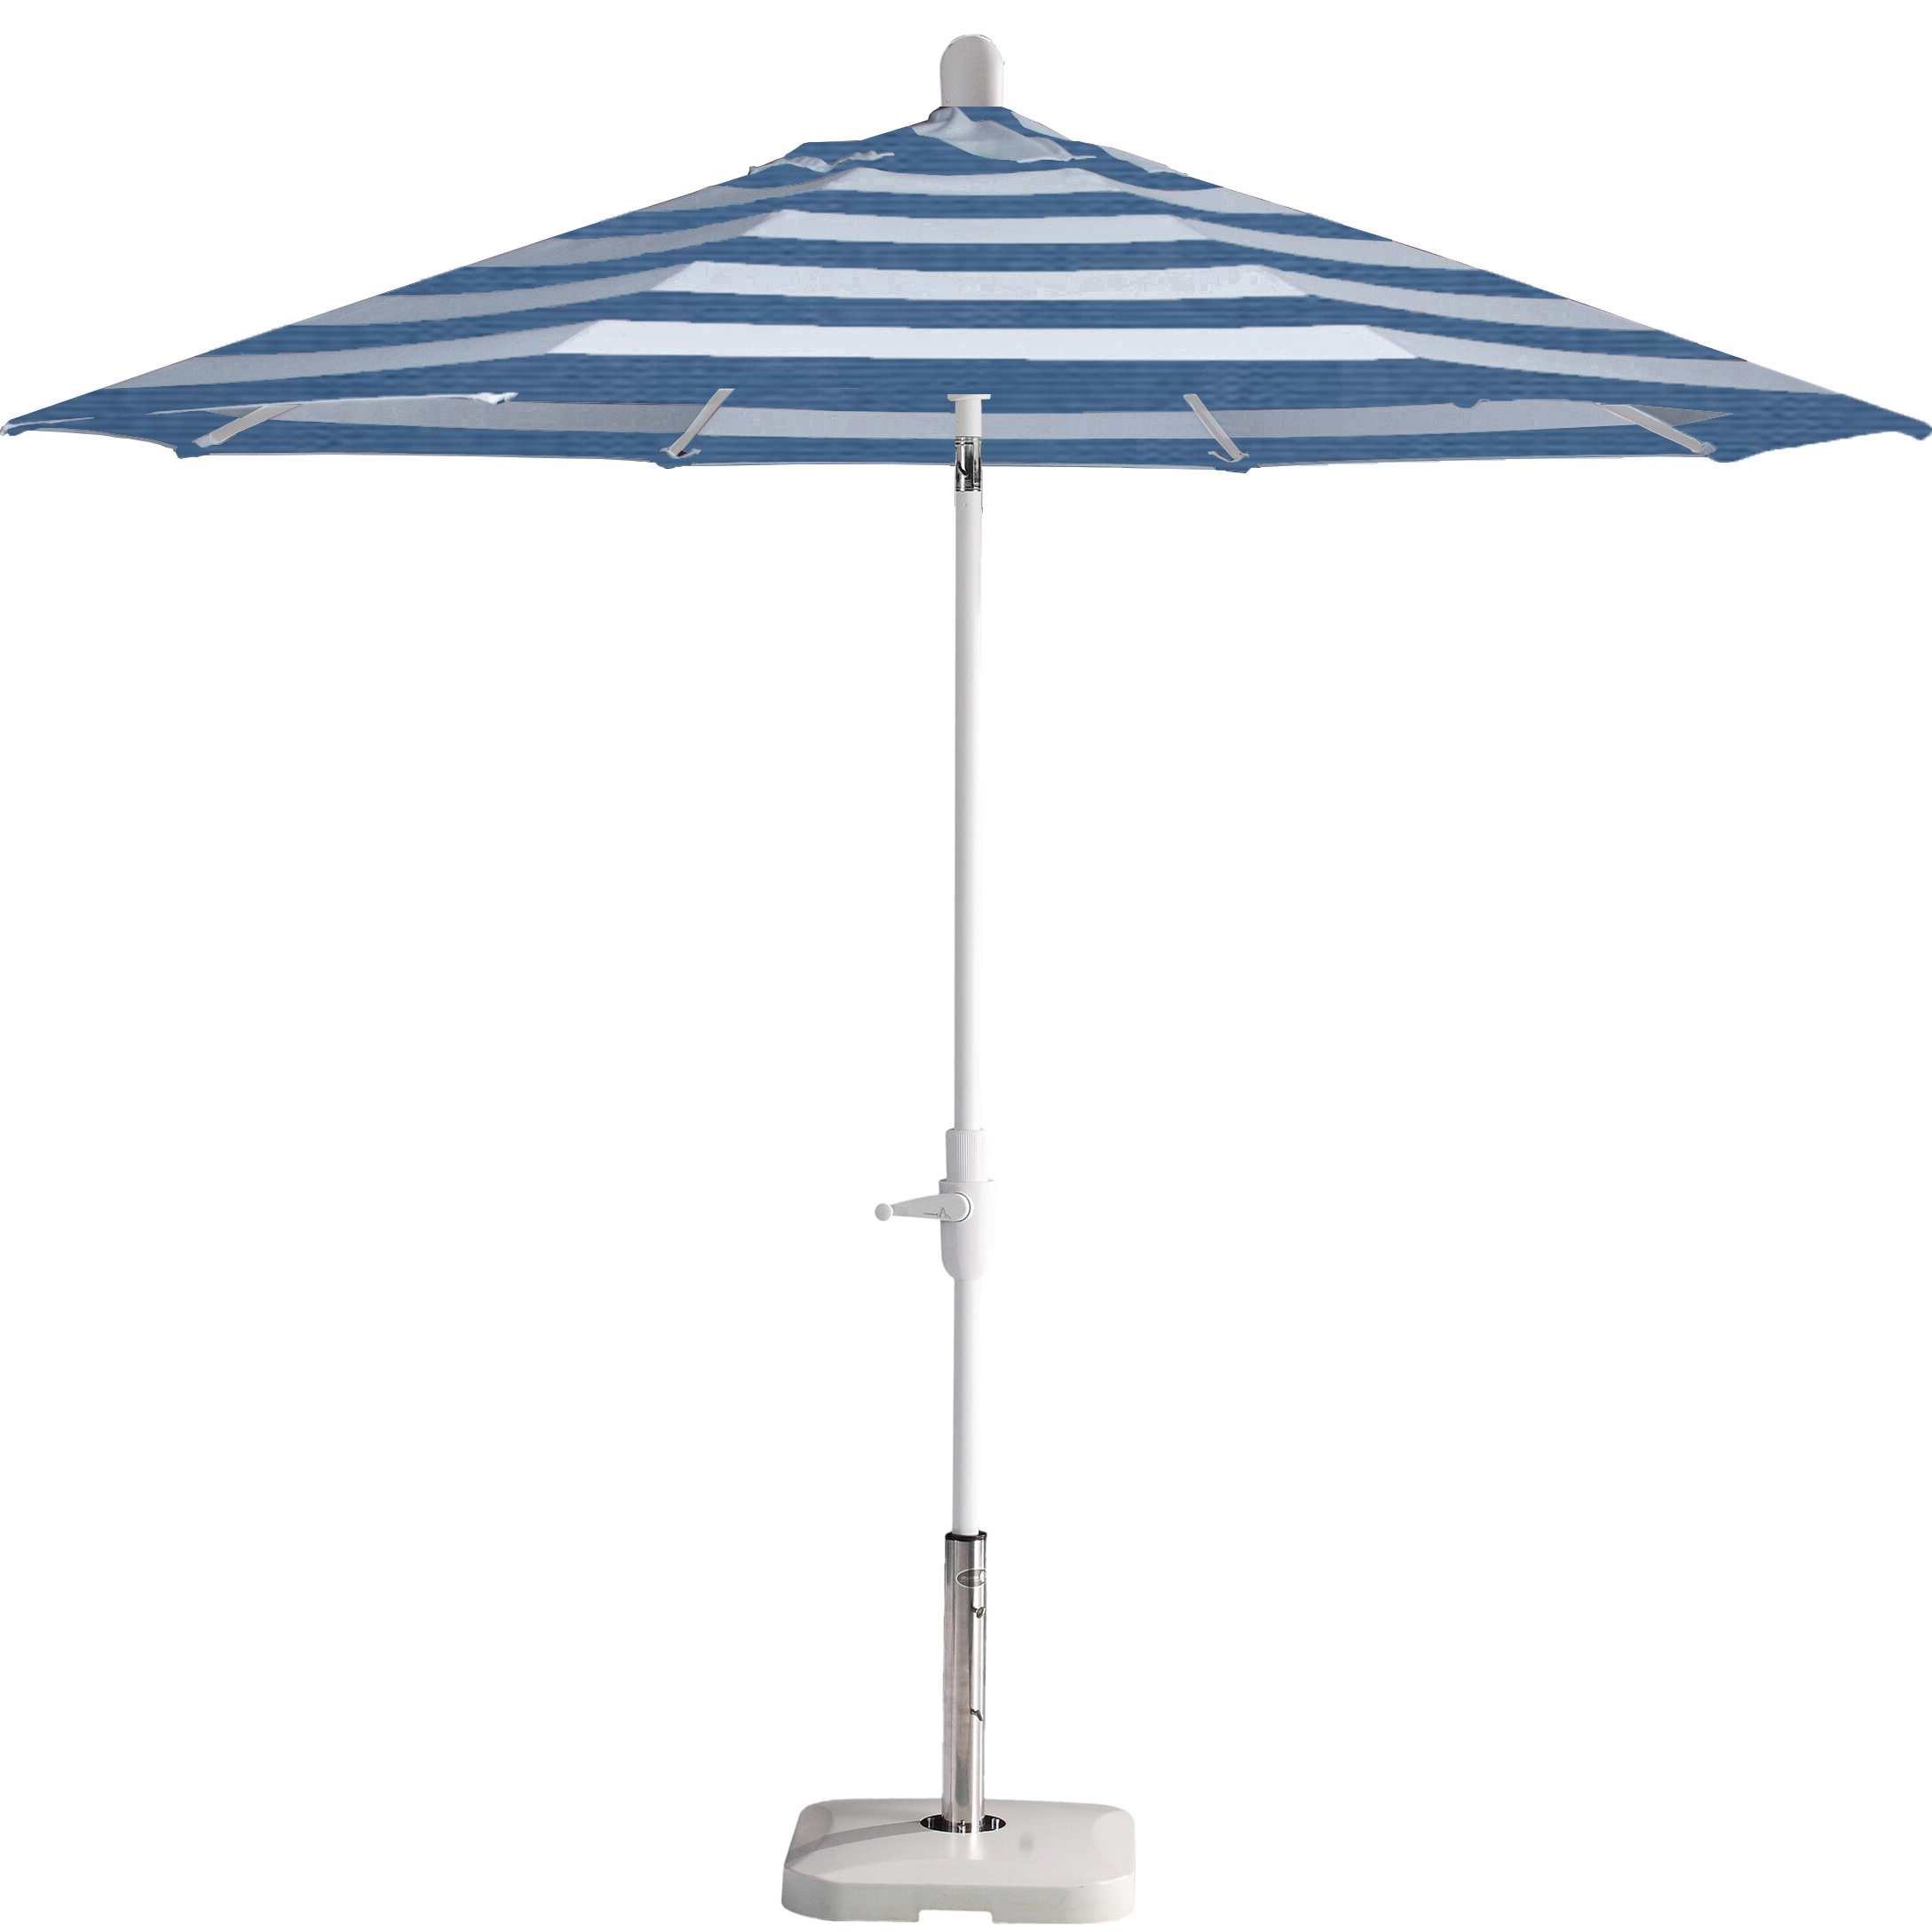 Wiebe Auto Tilt 9' Market Sunbrella Umbrella Throughout Newest Wiebe Auto Tilt Square Market Sunbrella Umbrellas (View 16 of 20)